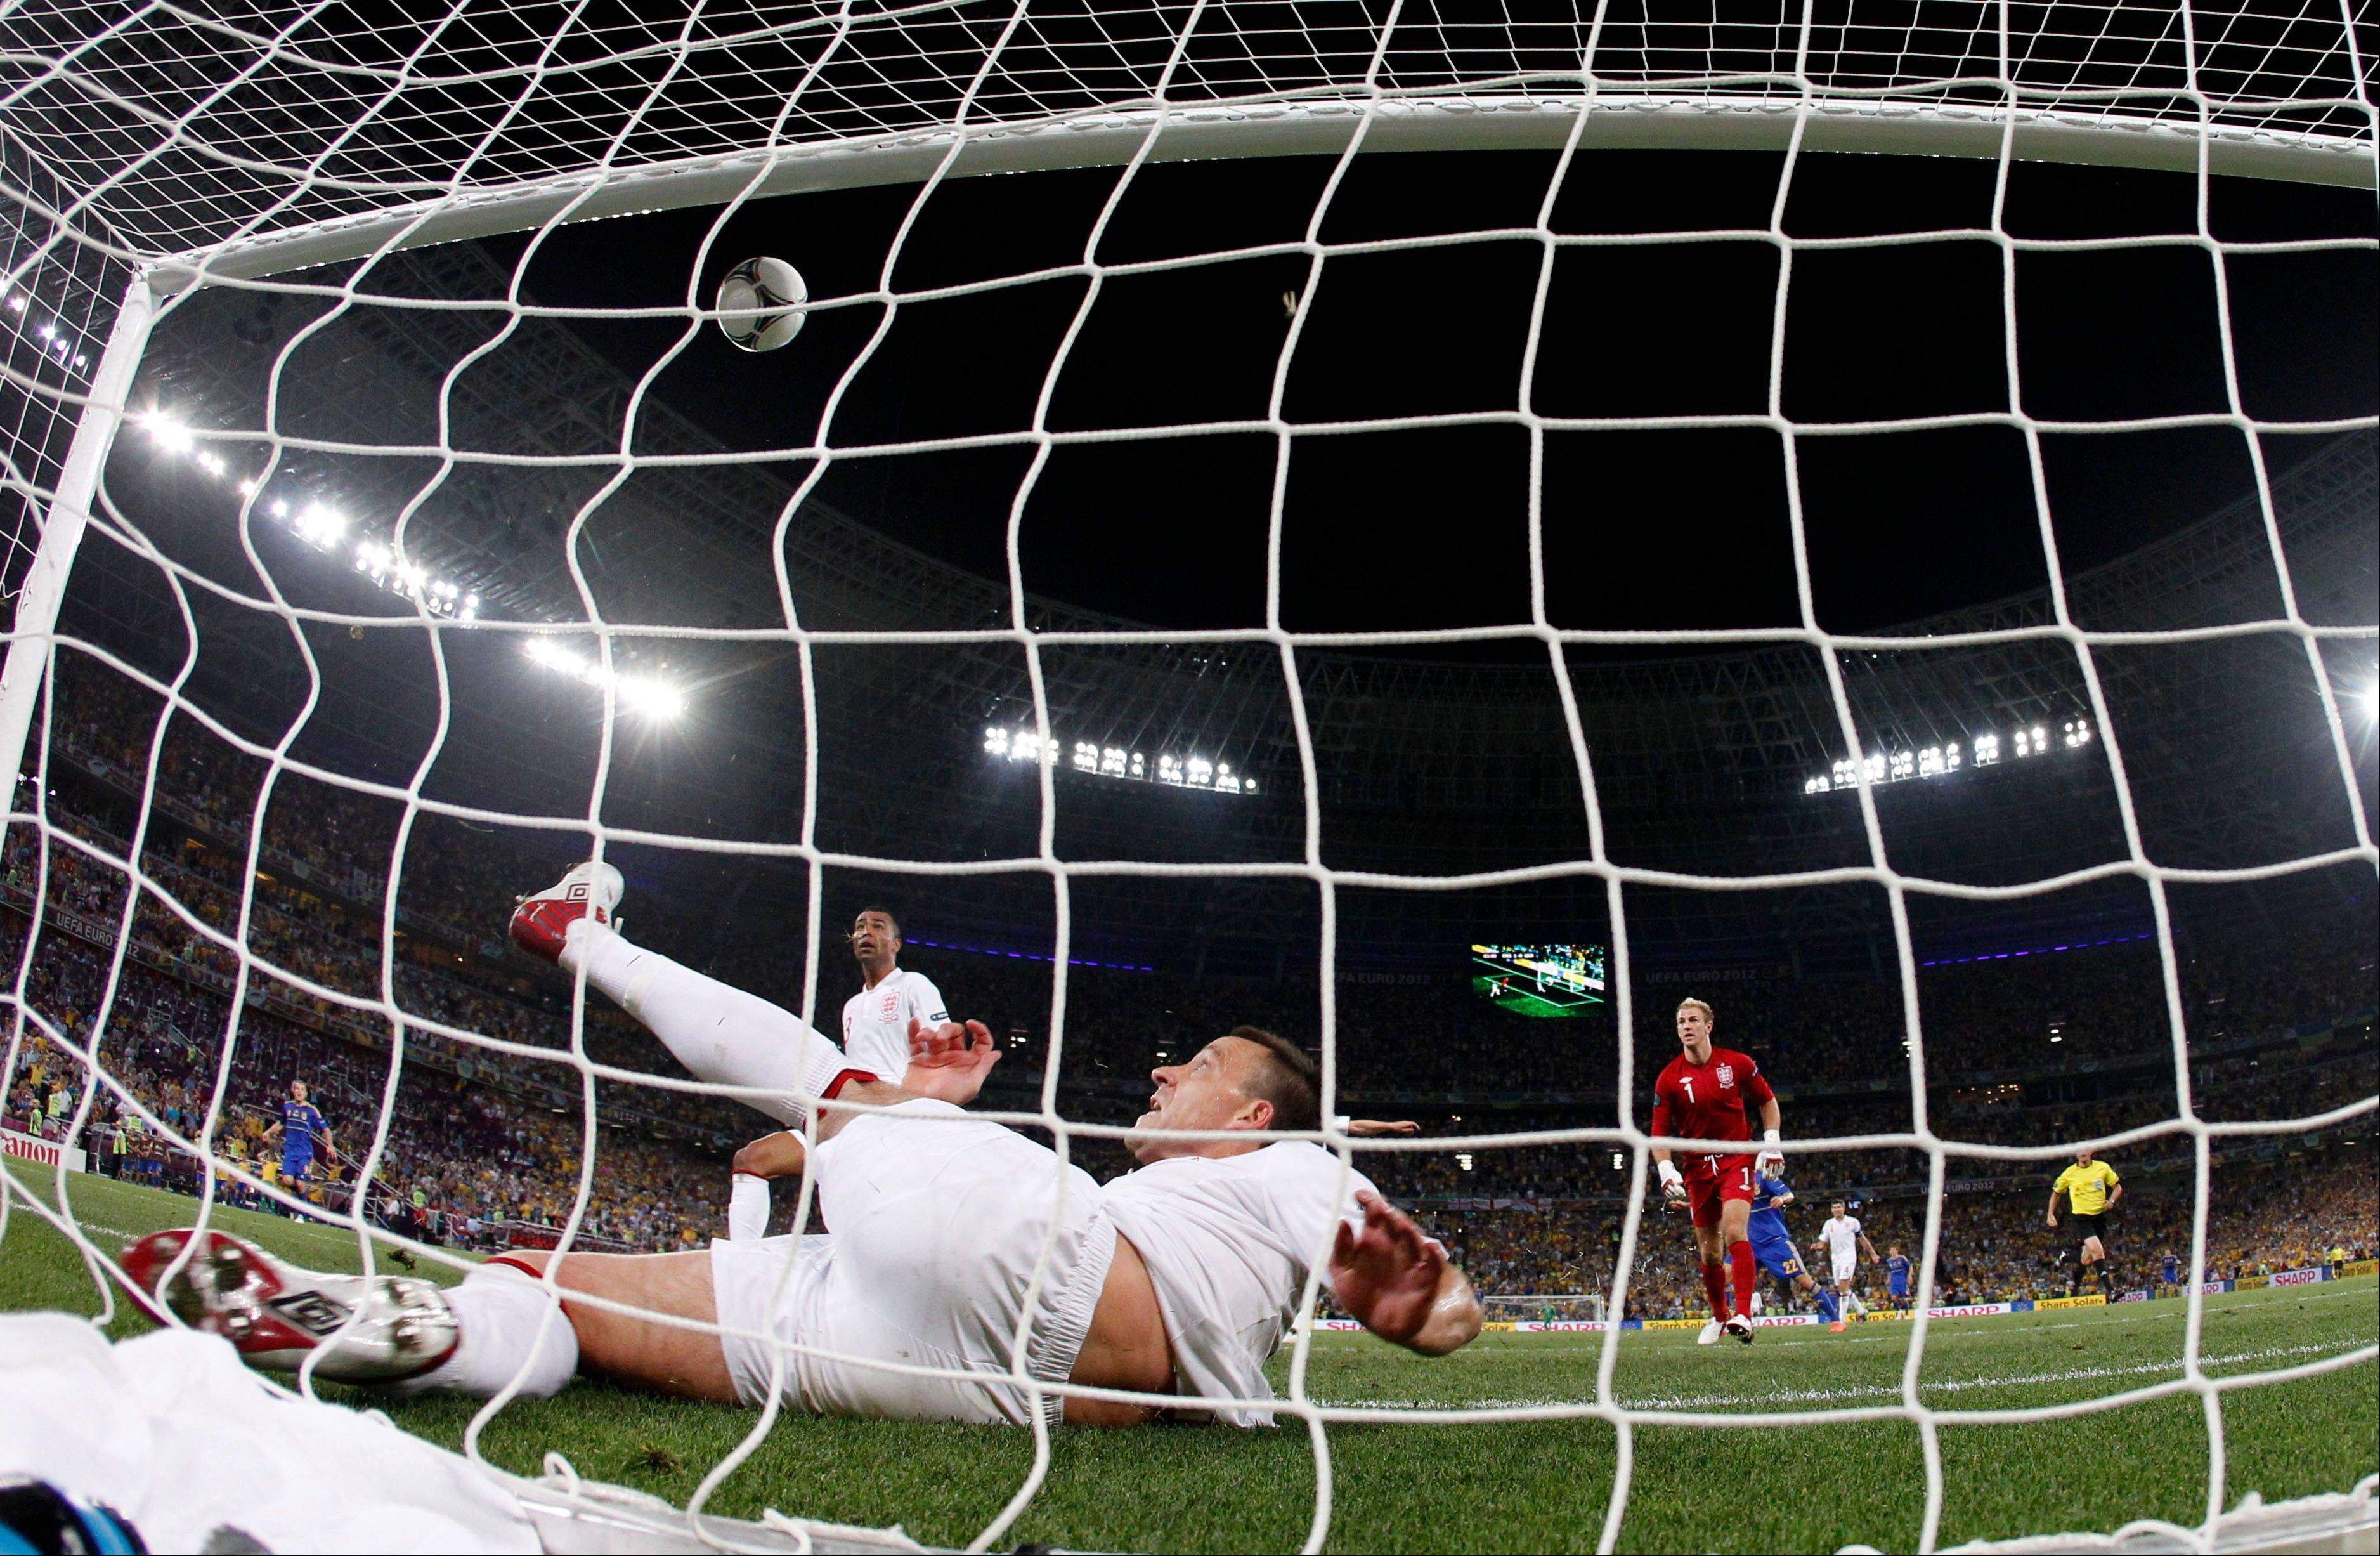 England's John Terry clears the ball away from his goal Tuesday during the Euro 2012 soccer match between England and Ukraine in Donetsk, Ukraine.